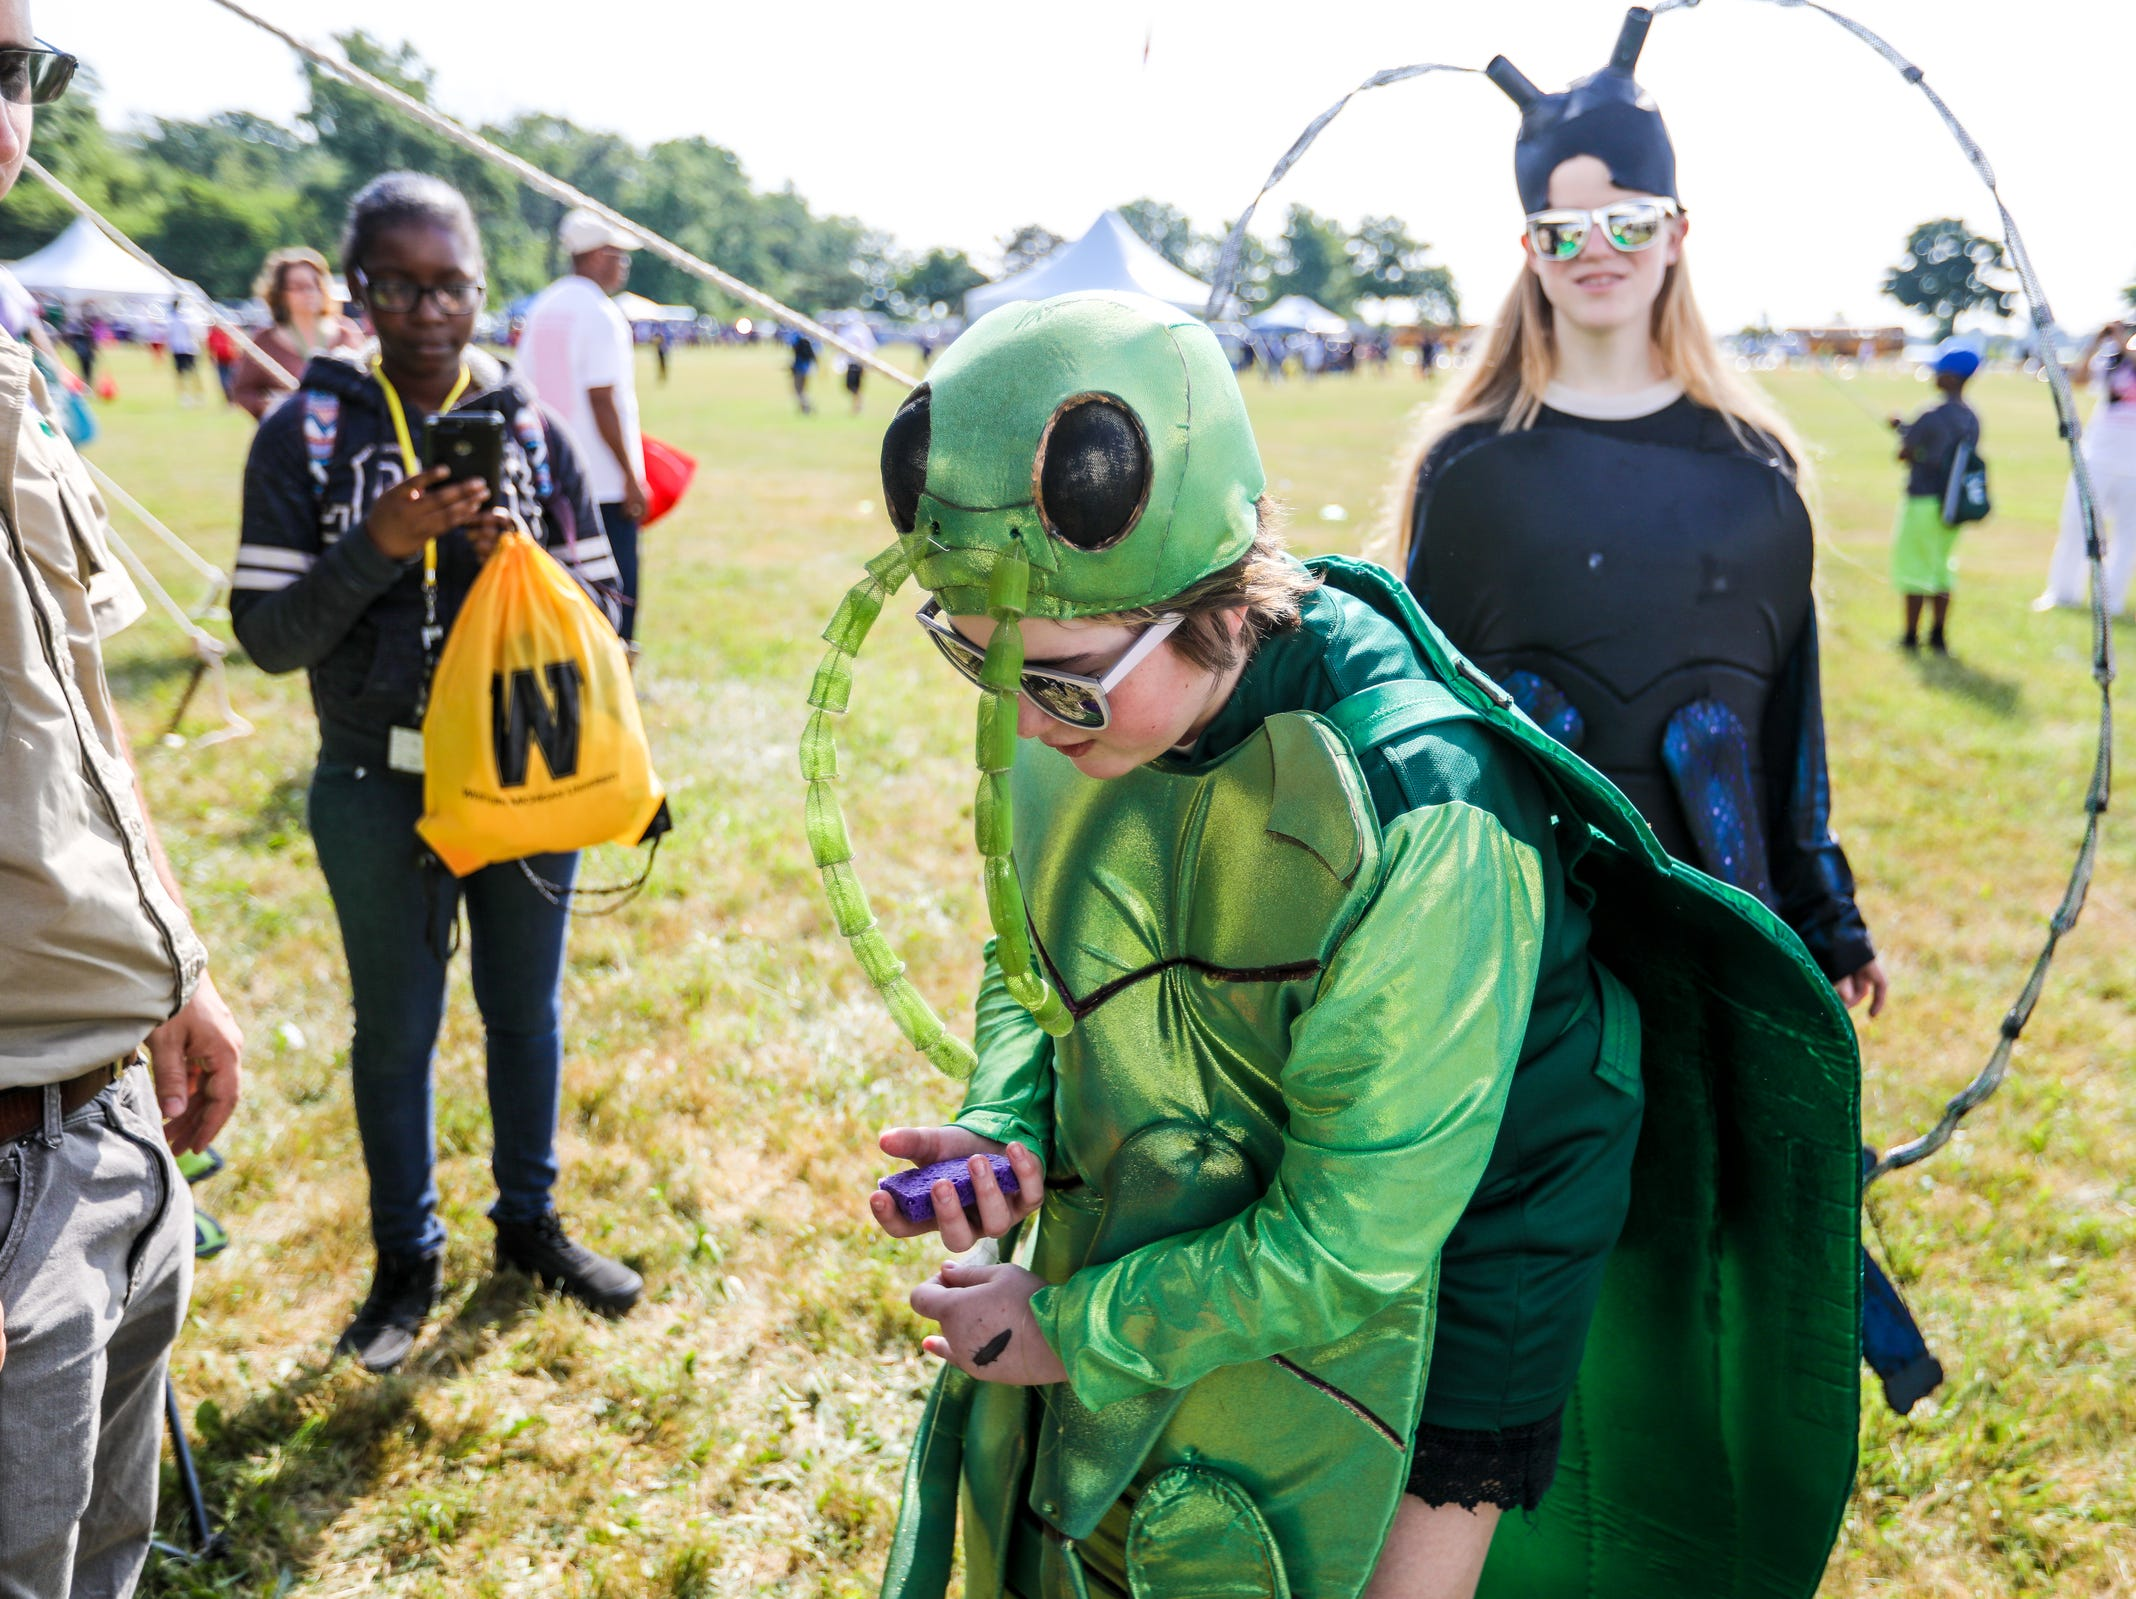 Madison Sullivan, 12, of Milan, dressed as invasive species Emerald Ash Borer as her sister Brianna Sullivan, 15, who is dressed as an Asian Longhorn Beetle, stands by during Metro Detroit Youth Day at Belle Isle in Detroit on Wednesday, July 11, 2018.